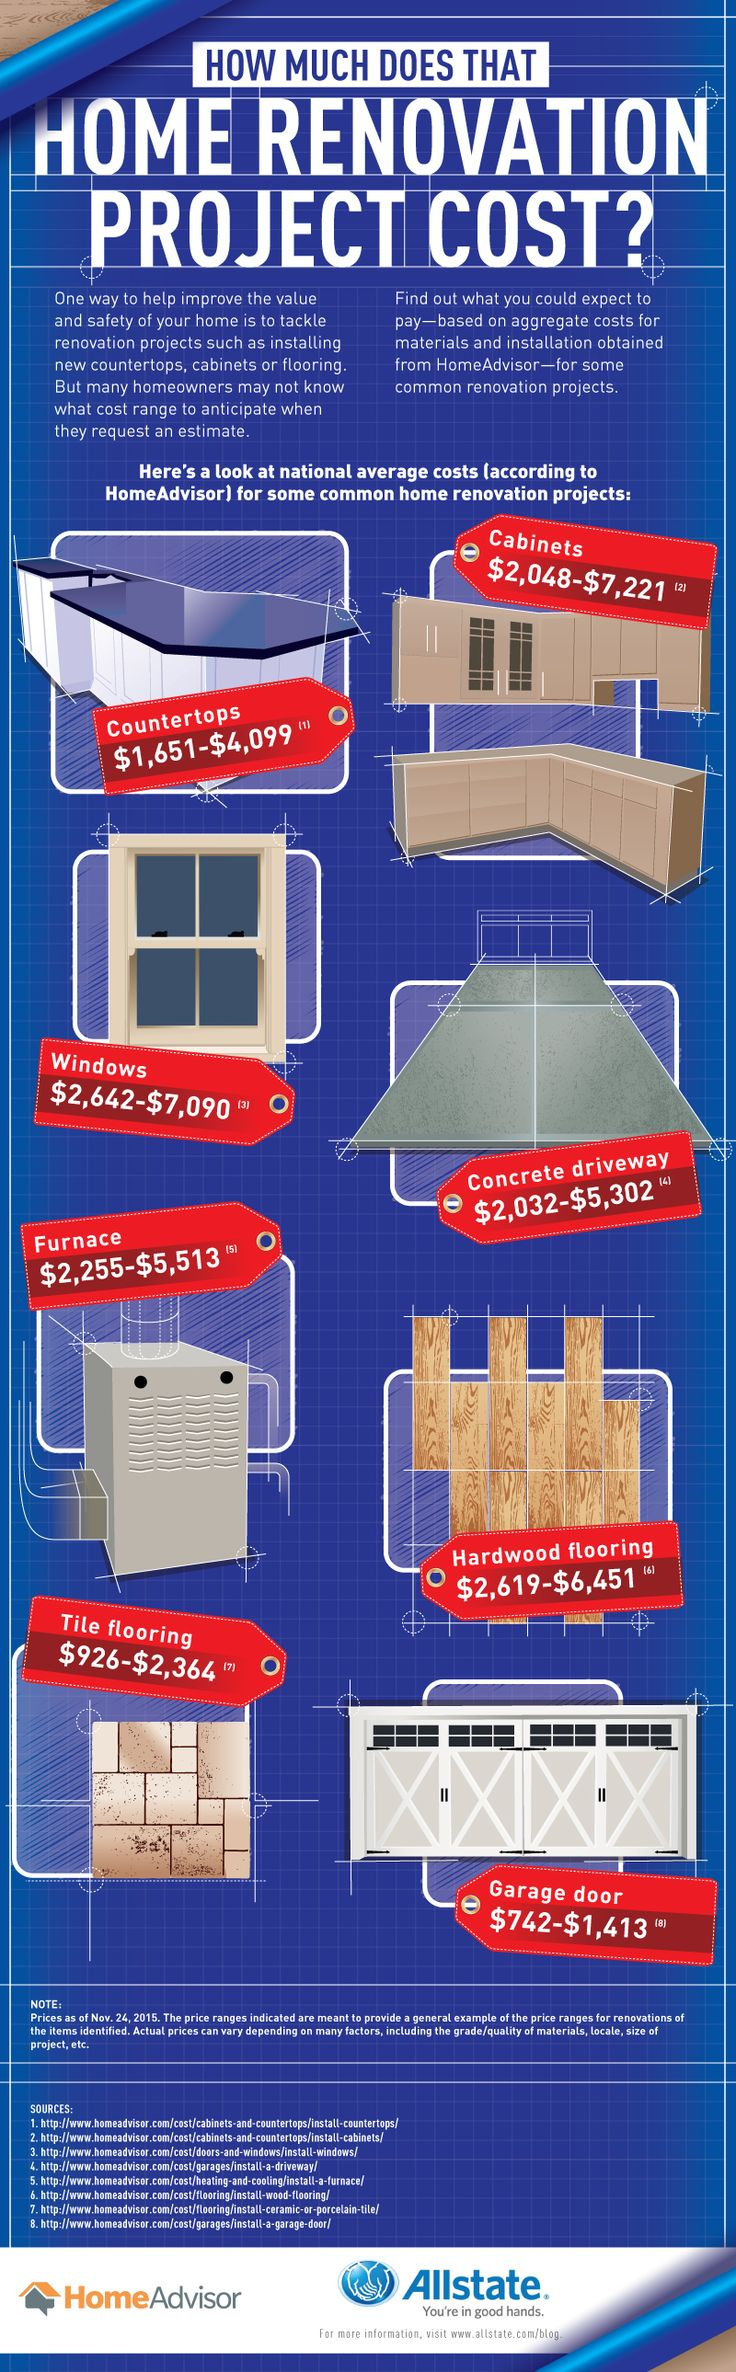 how much does that home renovation project cost [Infographic]